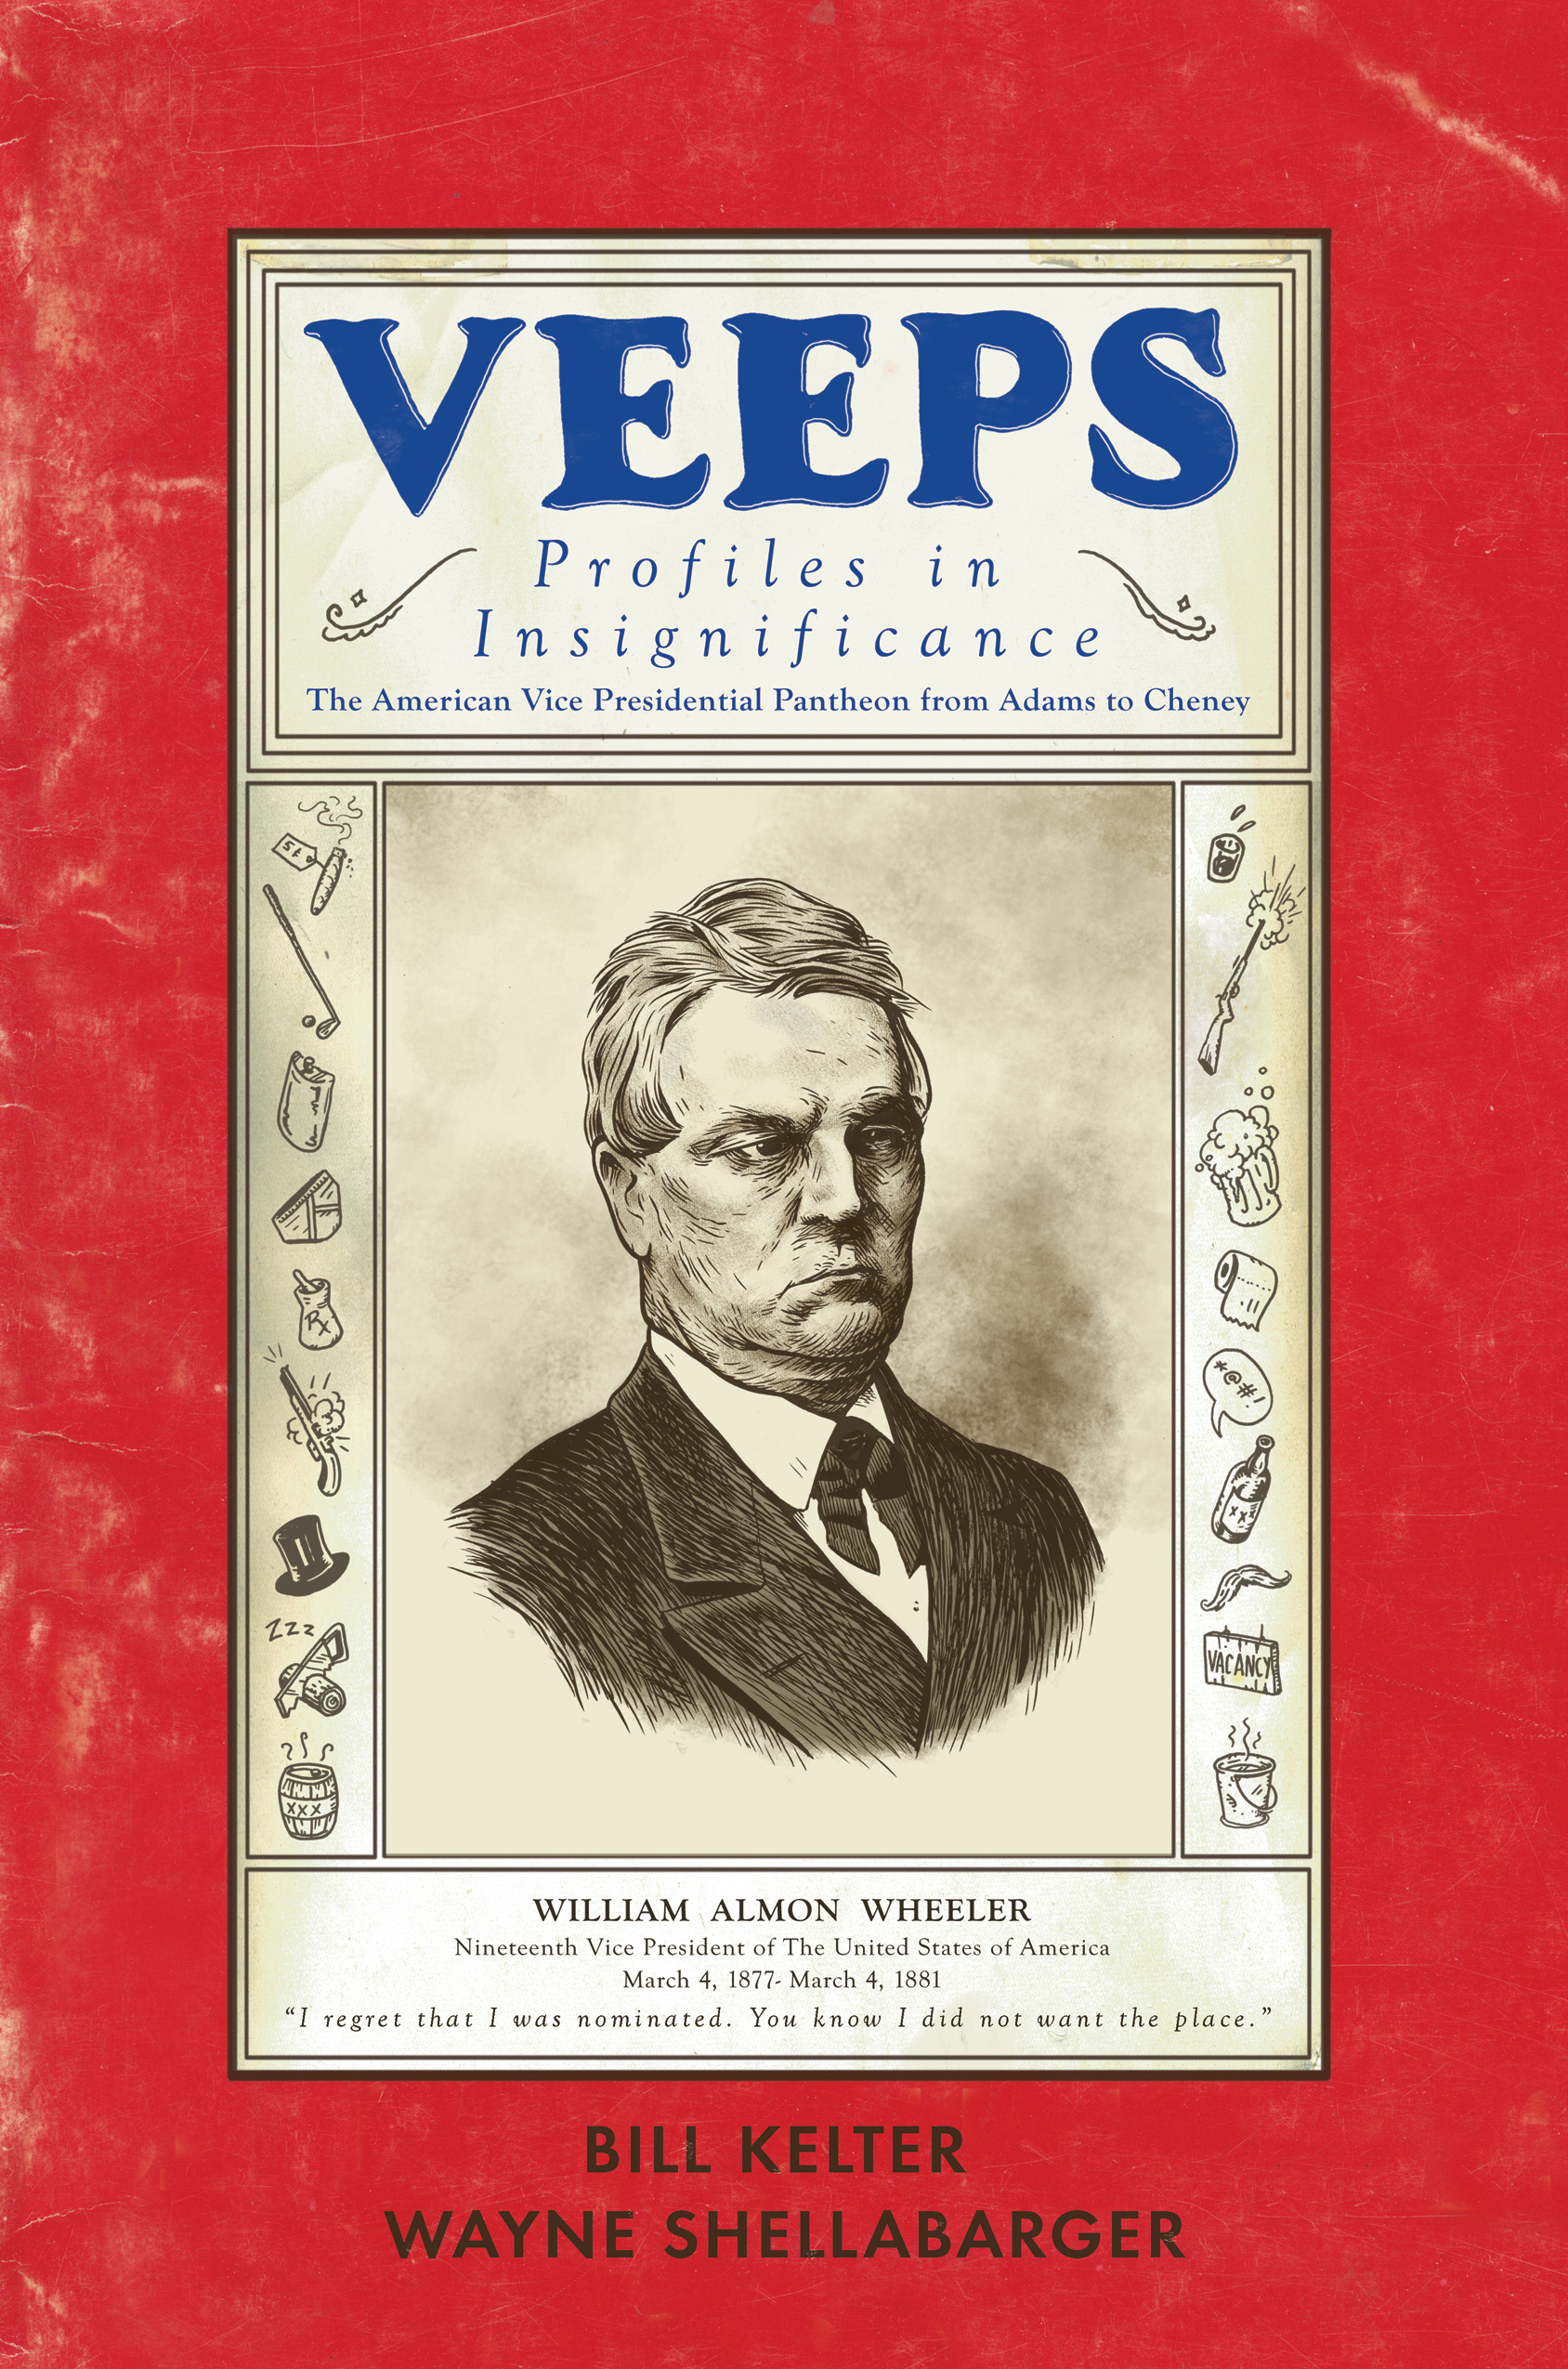 veeps, book, history, Wayne Shellabarger, Illustration, poster, vice president, vice presidents,